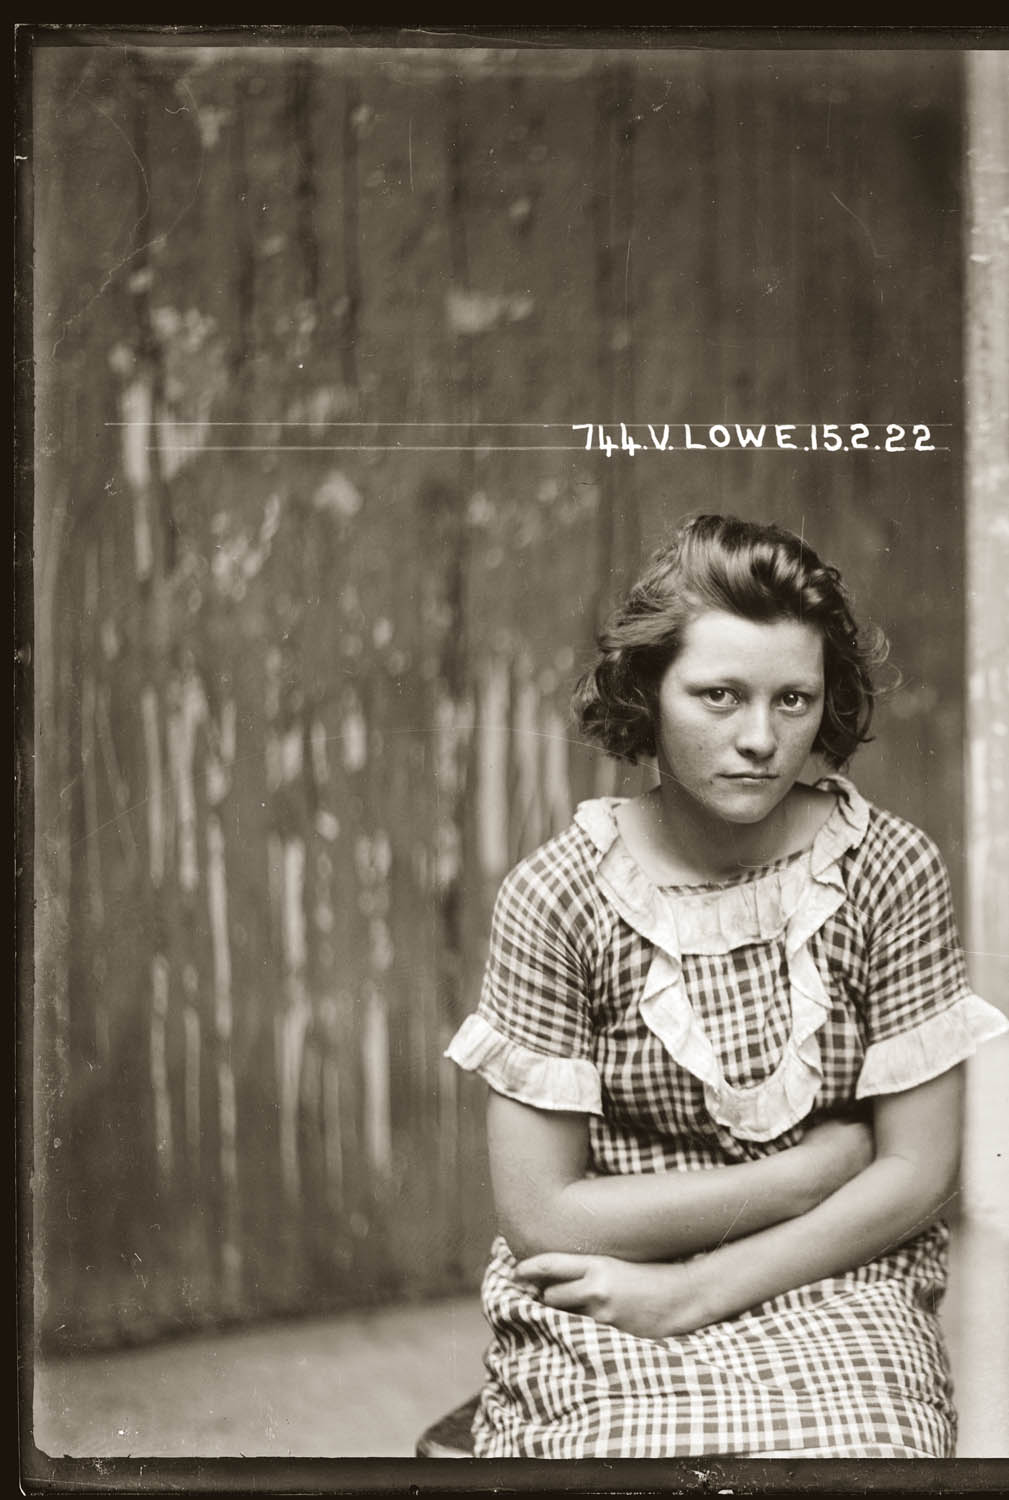 Mug shot of Valerie Lowe taken 15 February 1922, Central cells